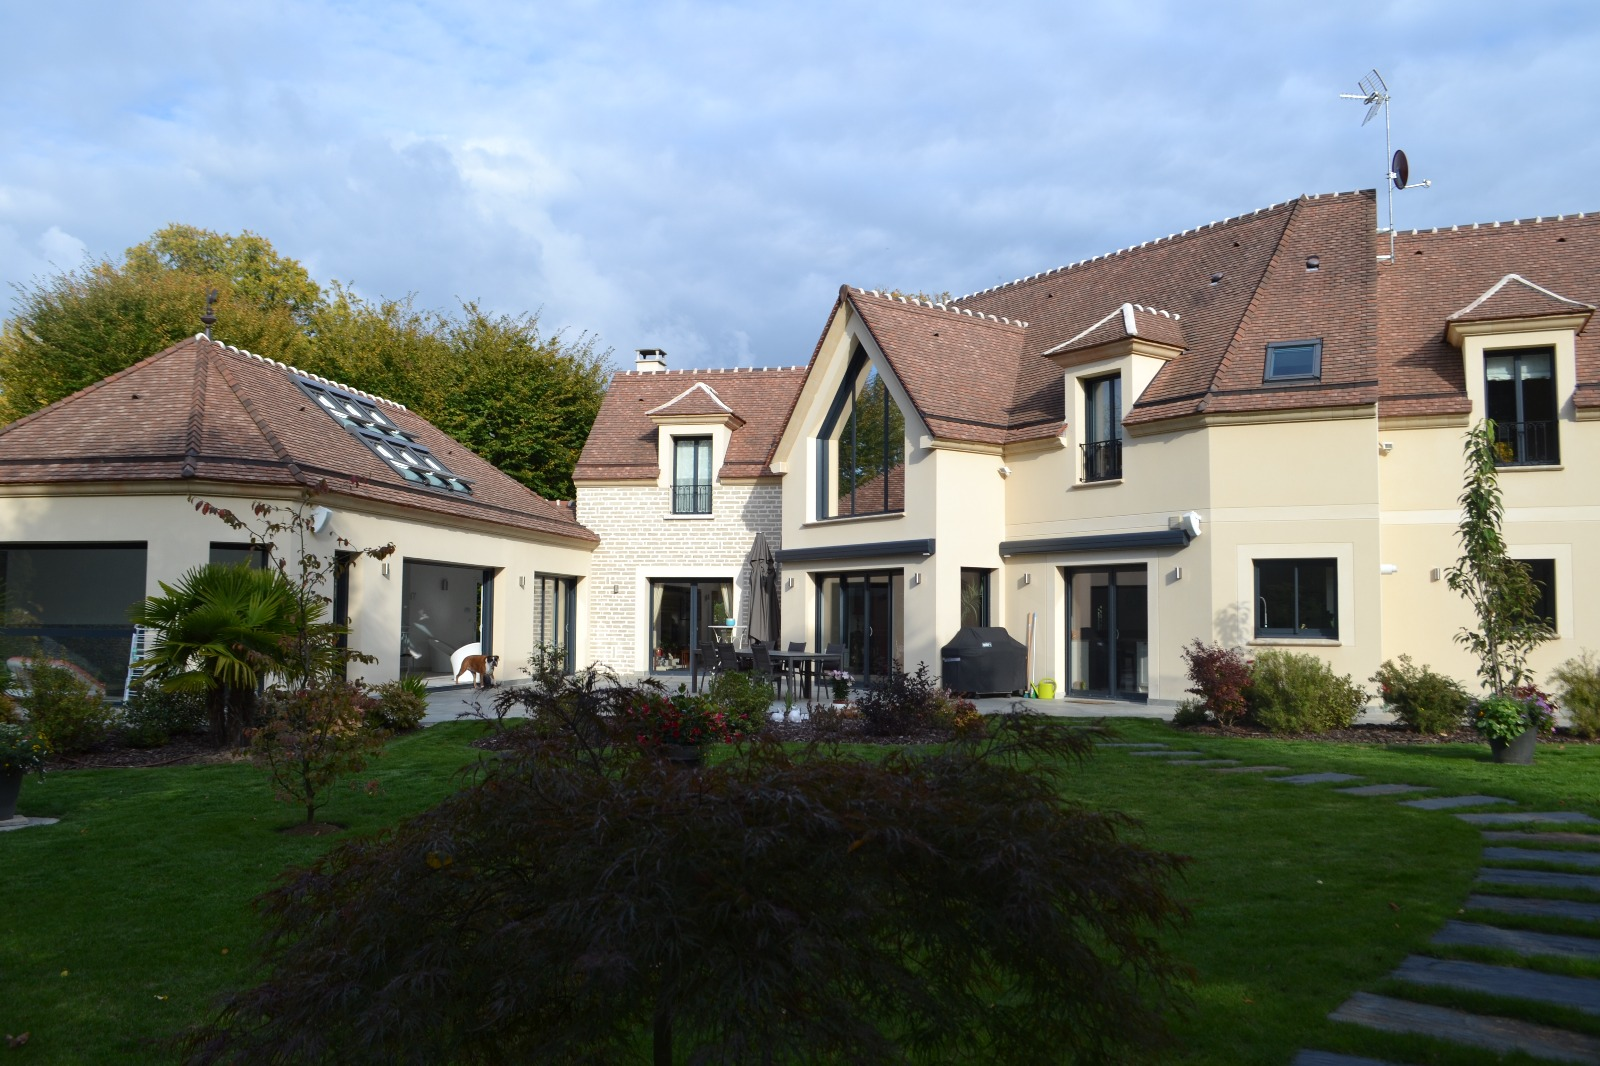 Barbizon maison contemporaine avec piscine int rieure 4 for Achat maison individuelle 77